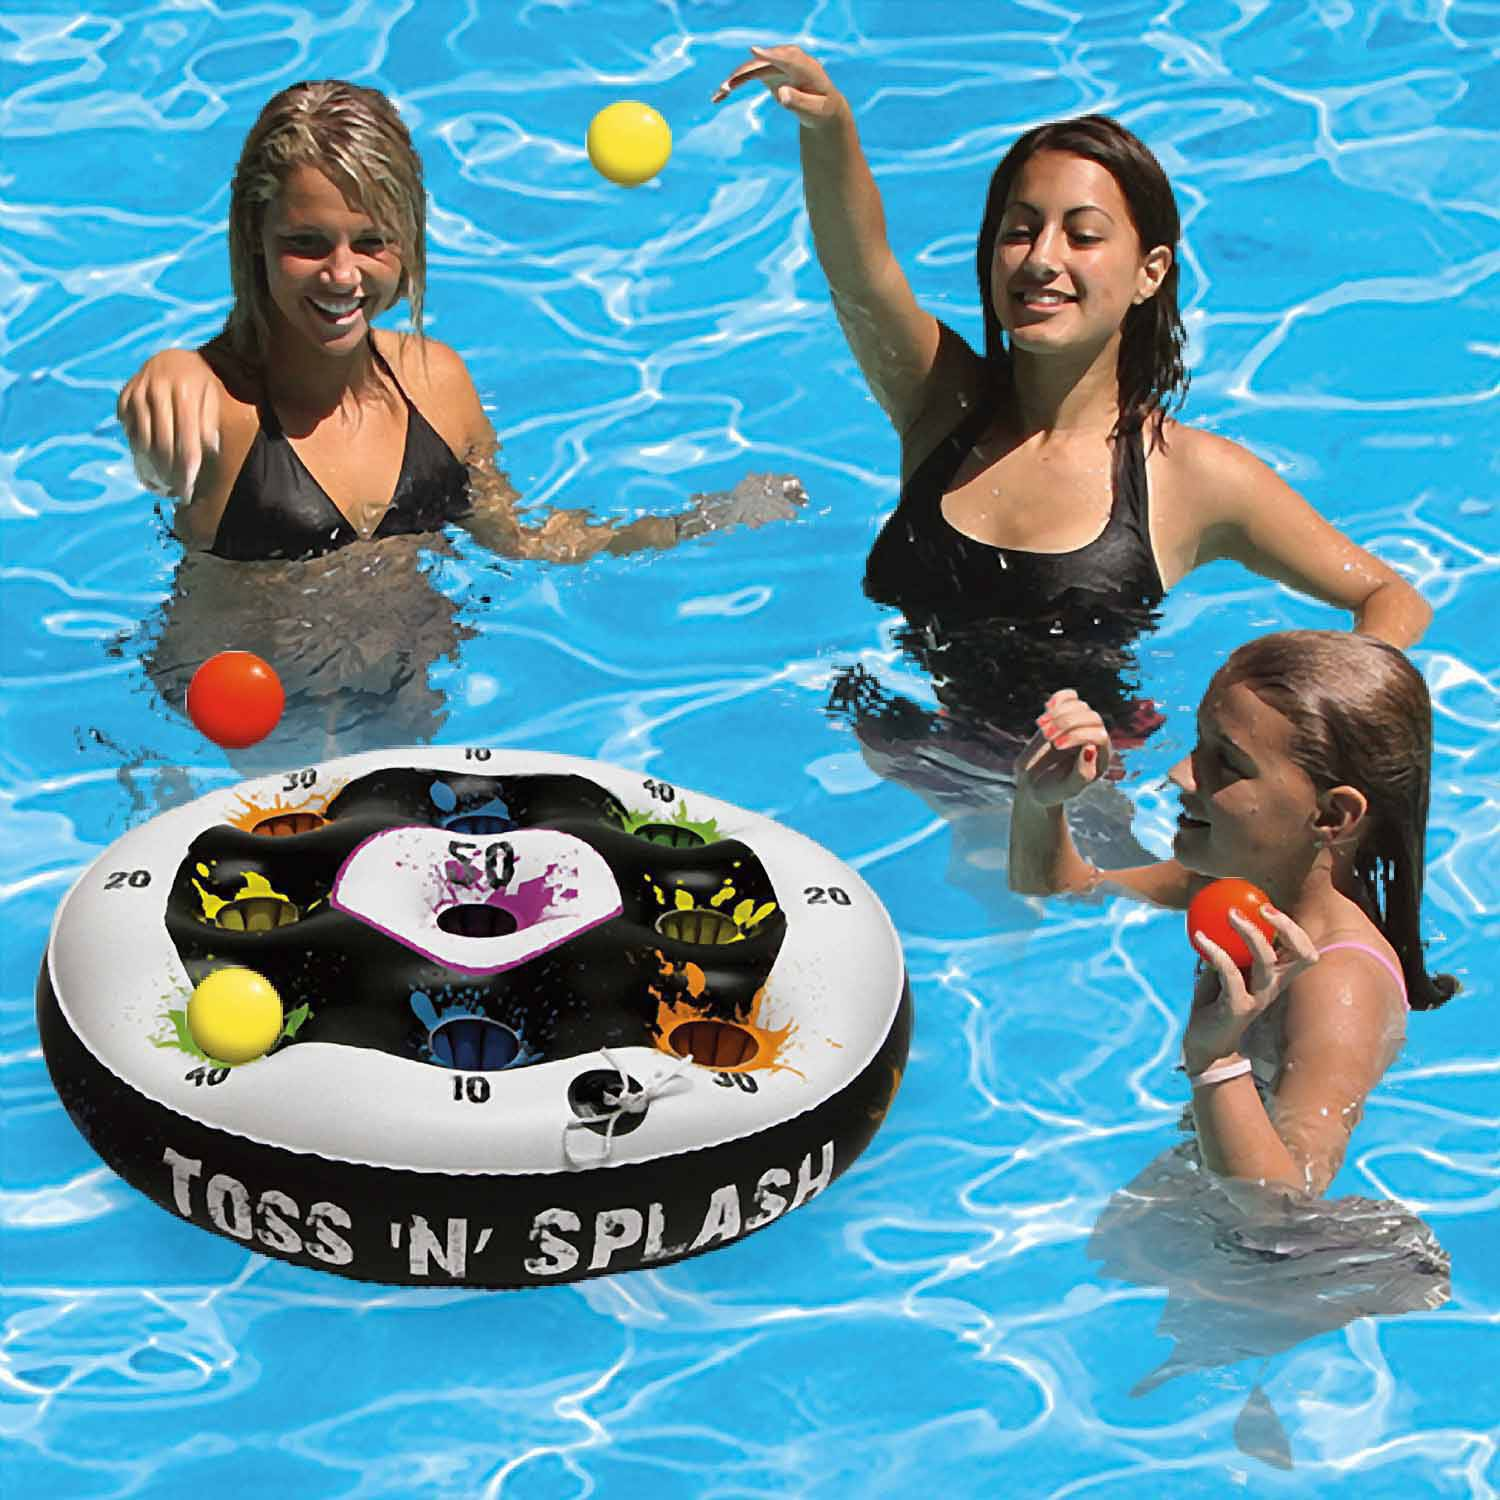 Poolmaster Toss N Splash